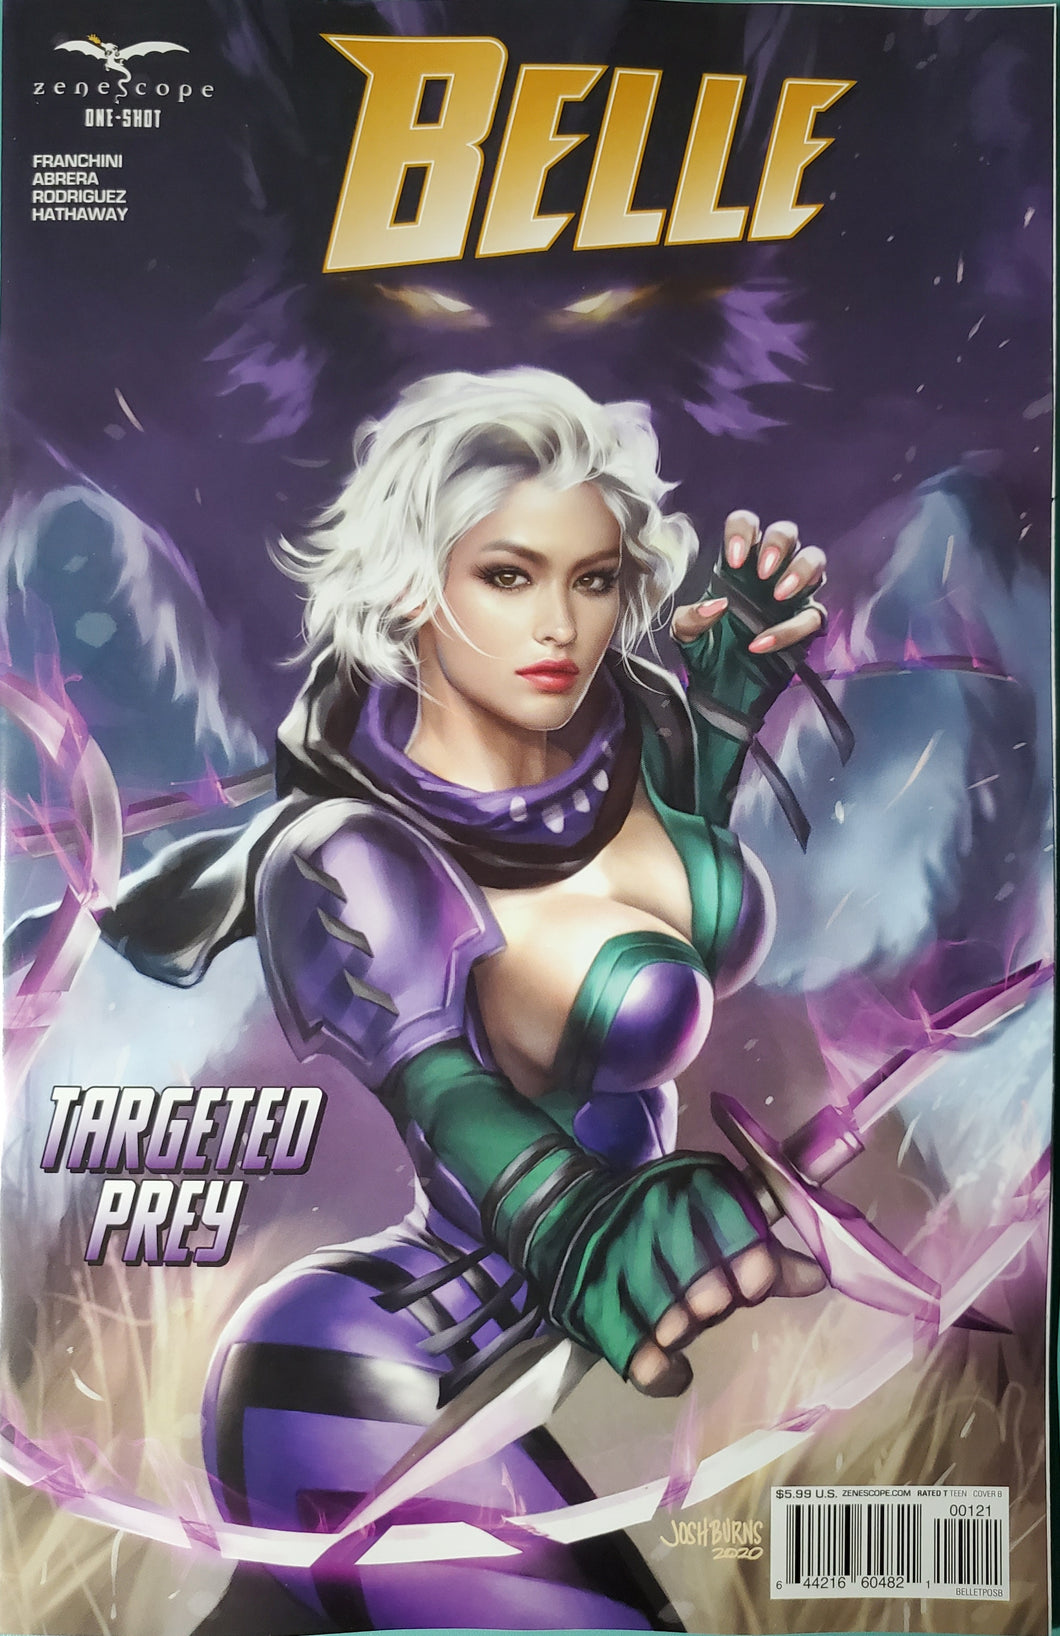 🔥 BELLE TARGETED PREY ONE SHOT Cover B Josh Burns NM Zenescope Gemini